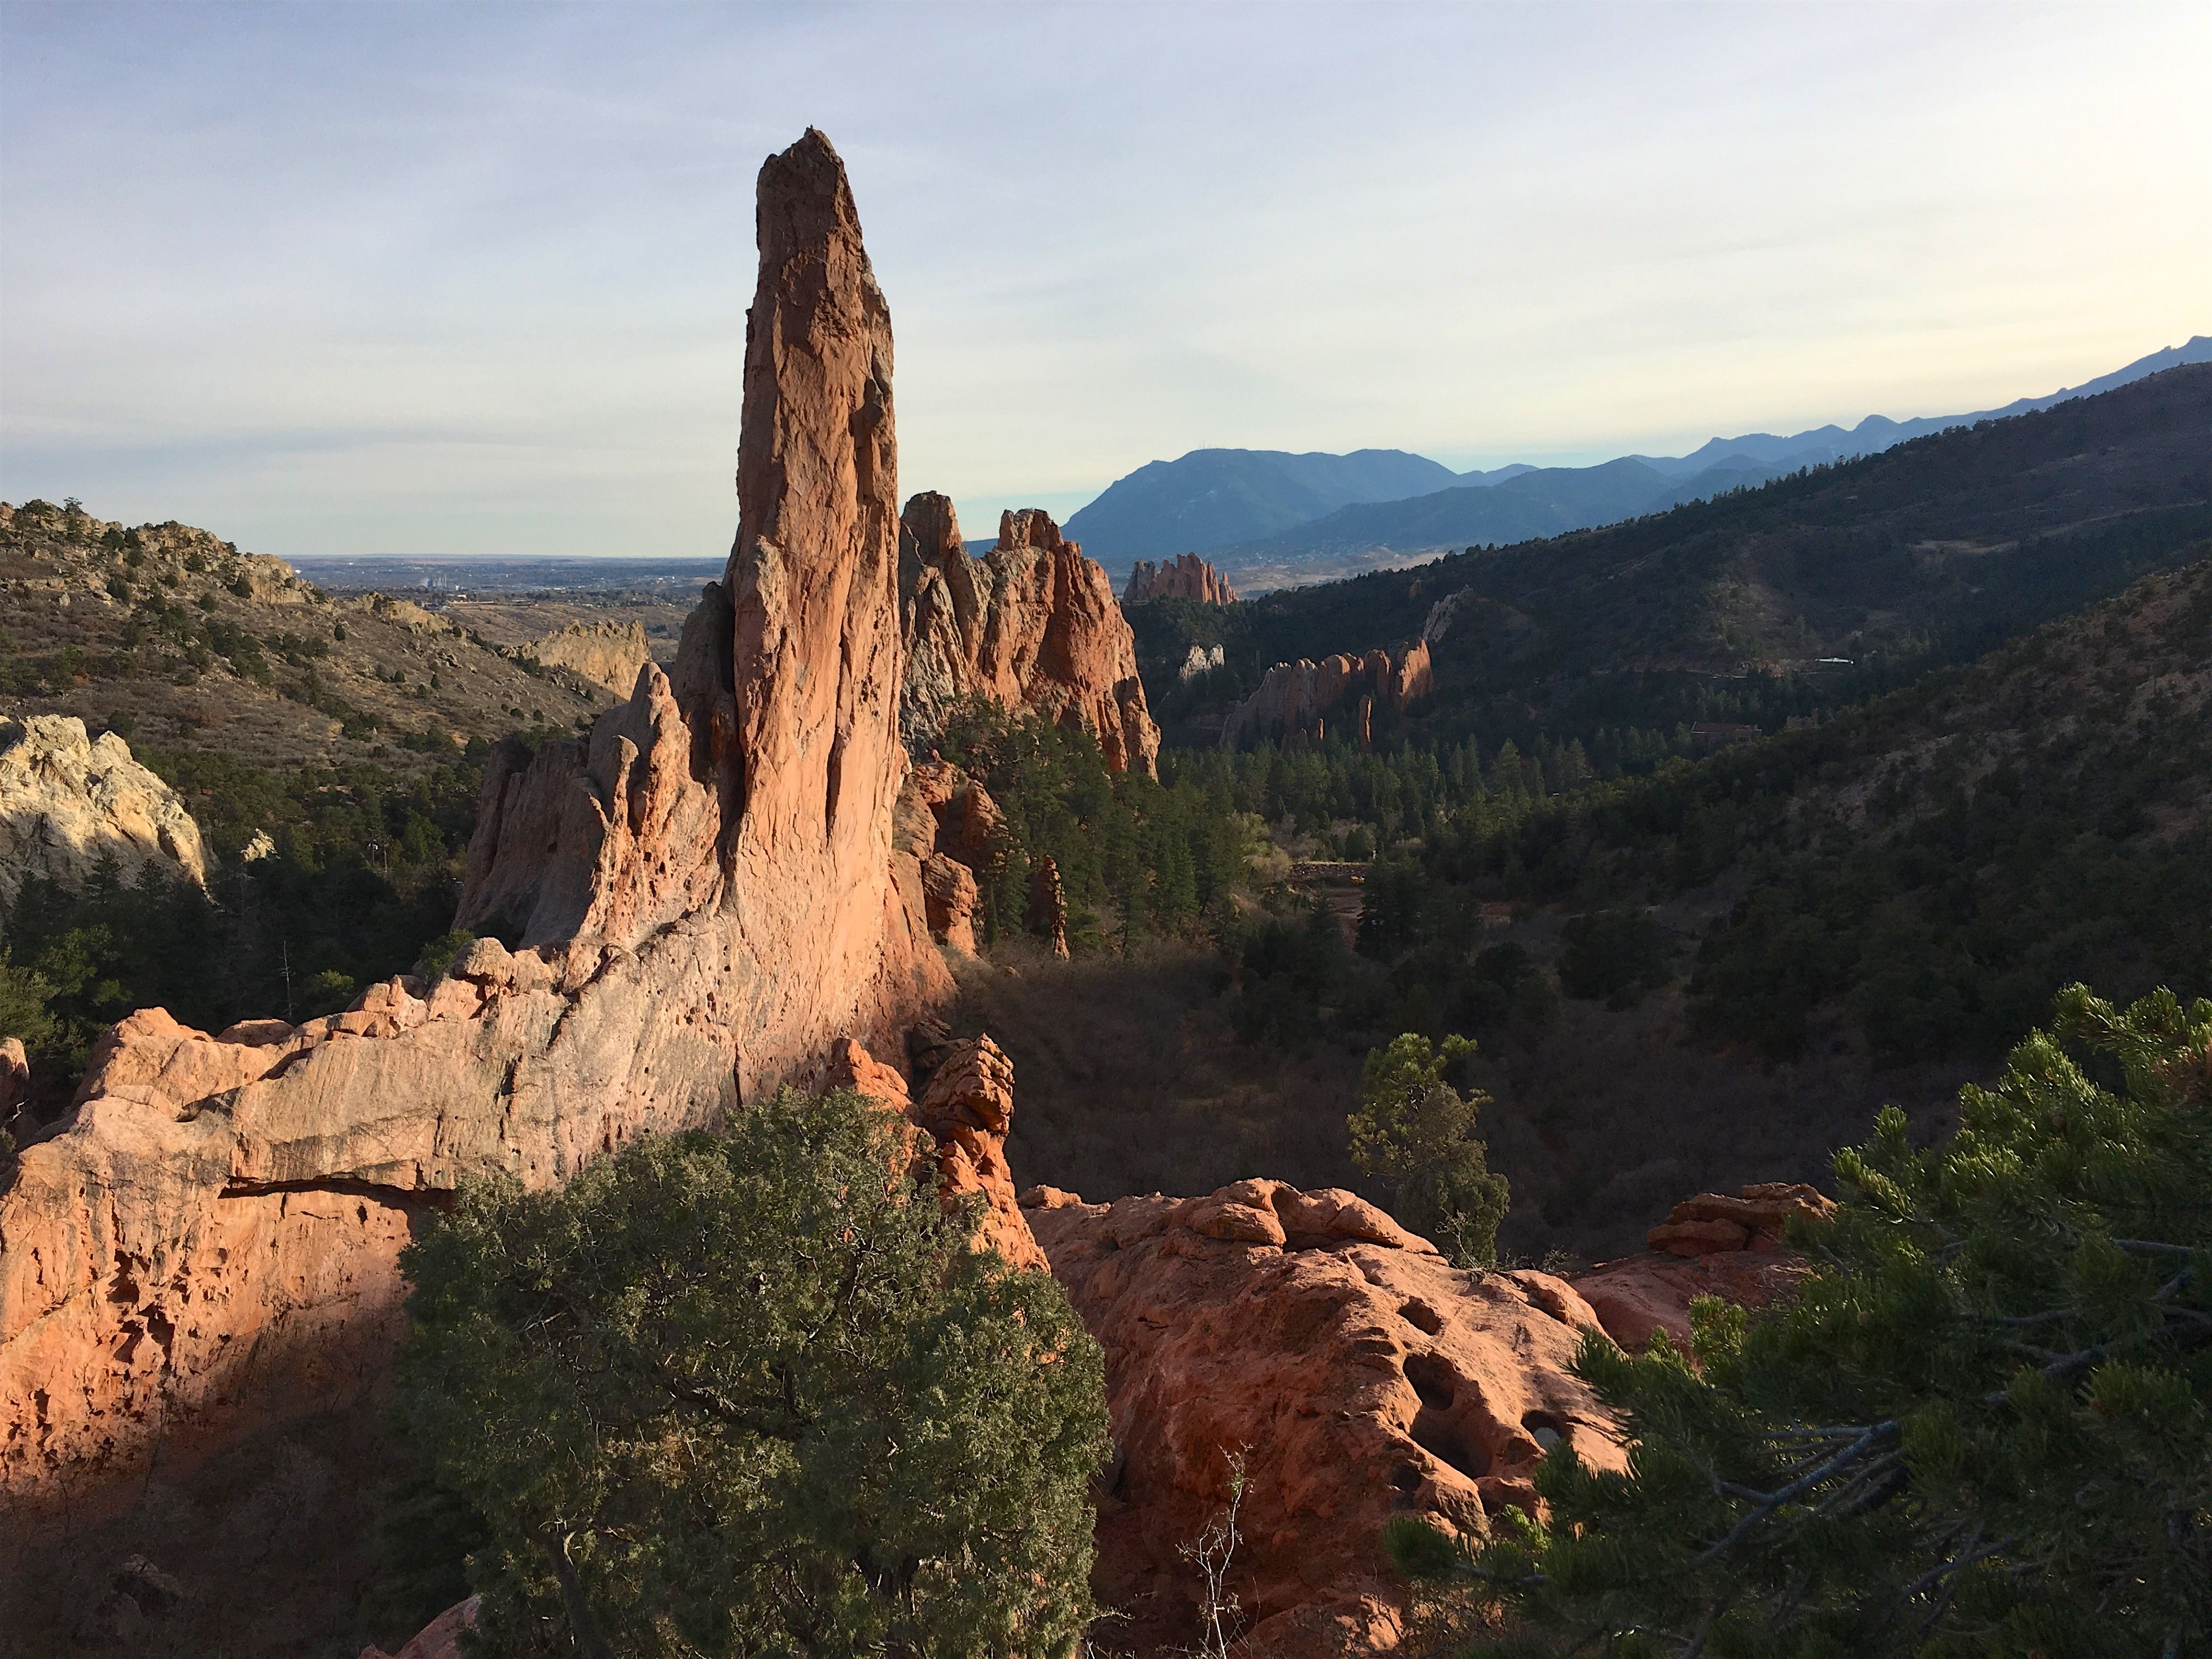 Garden of the gods in colorado springs co is cool but